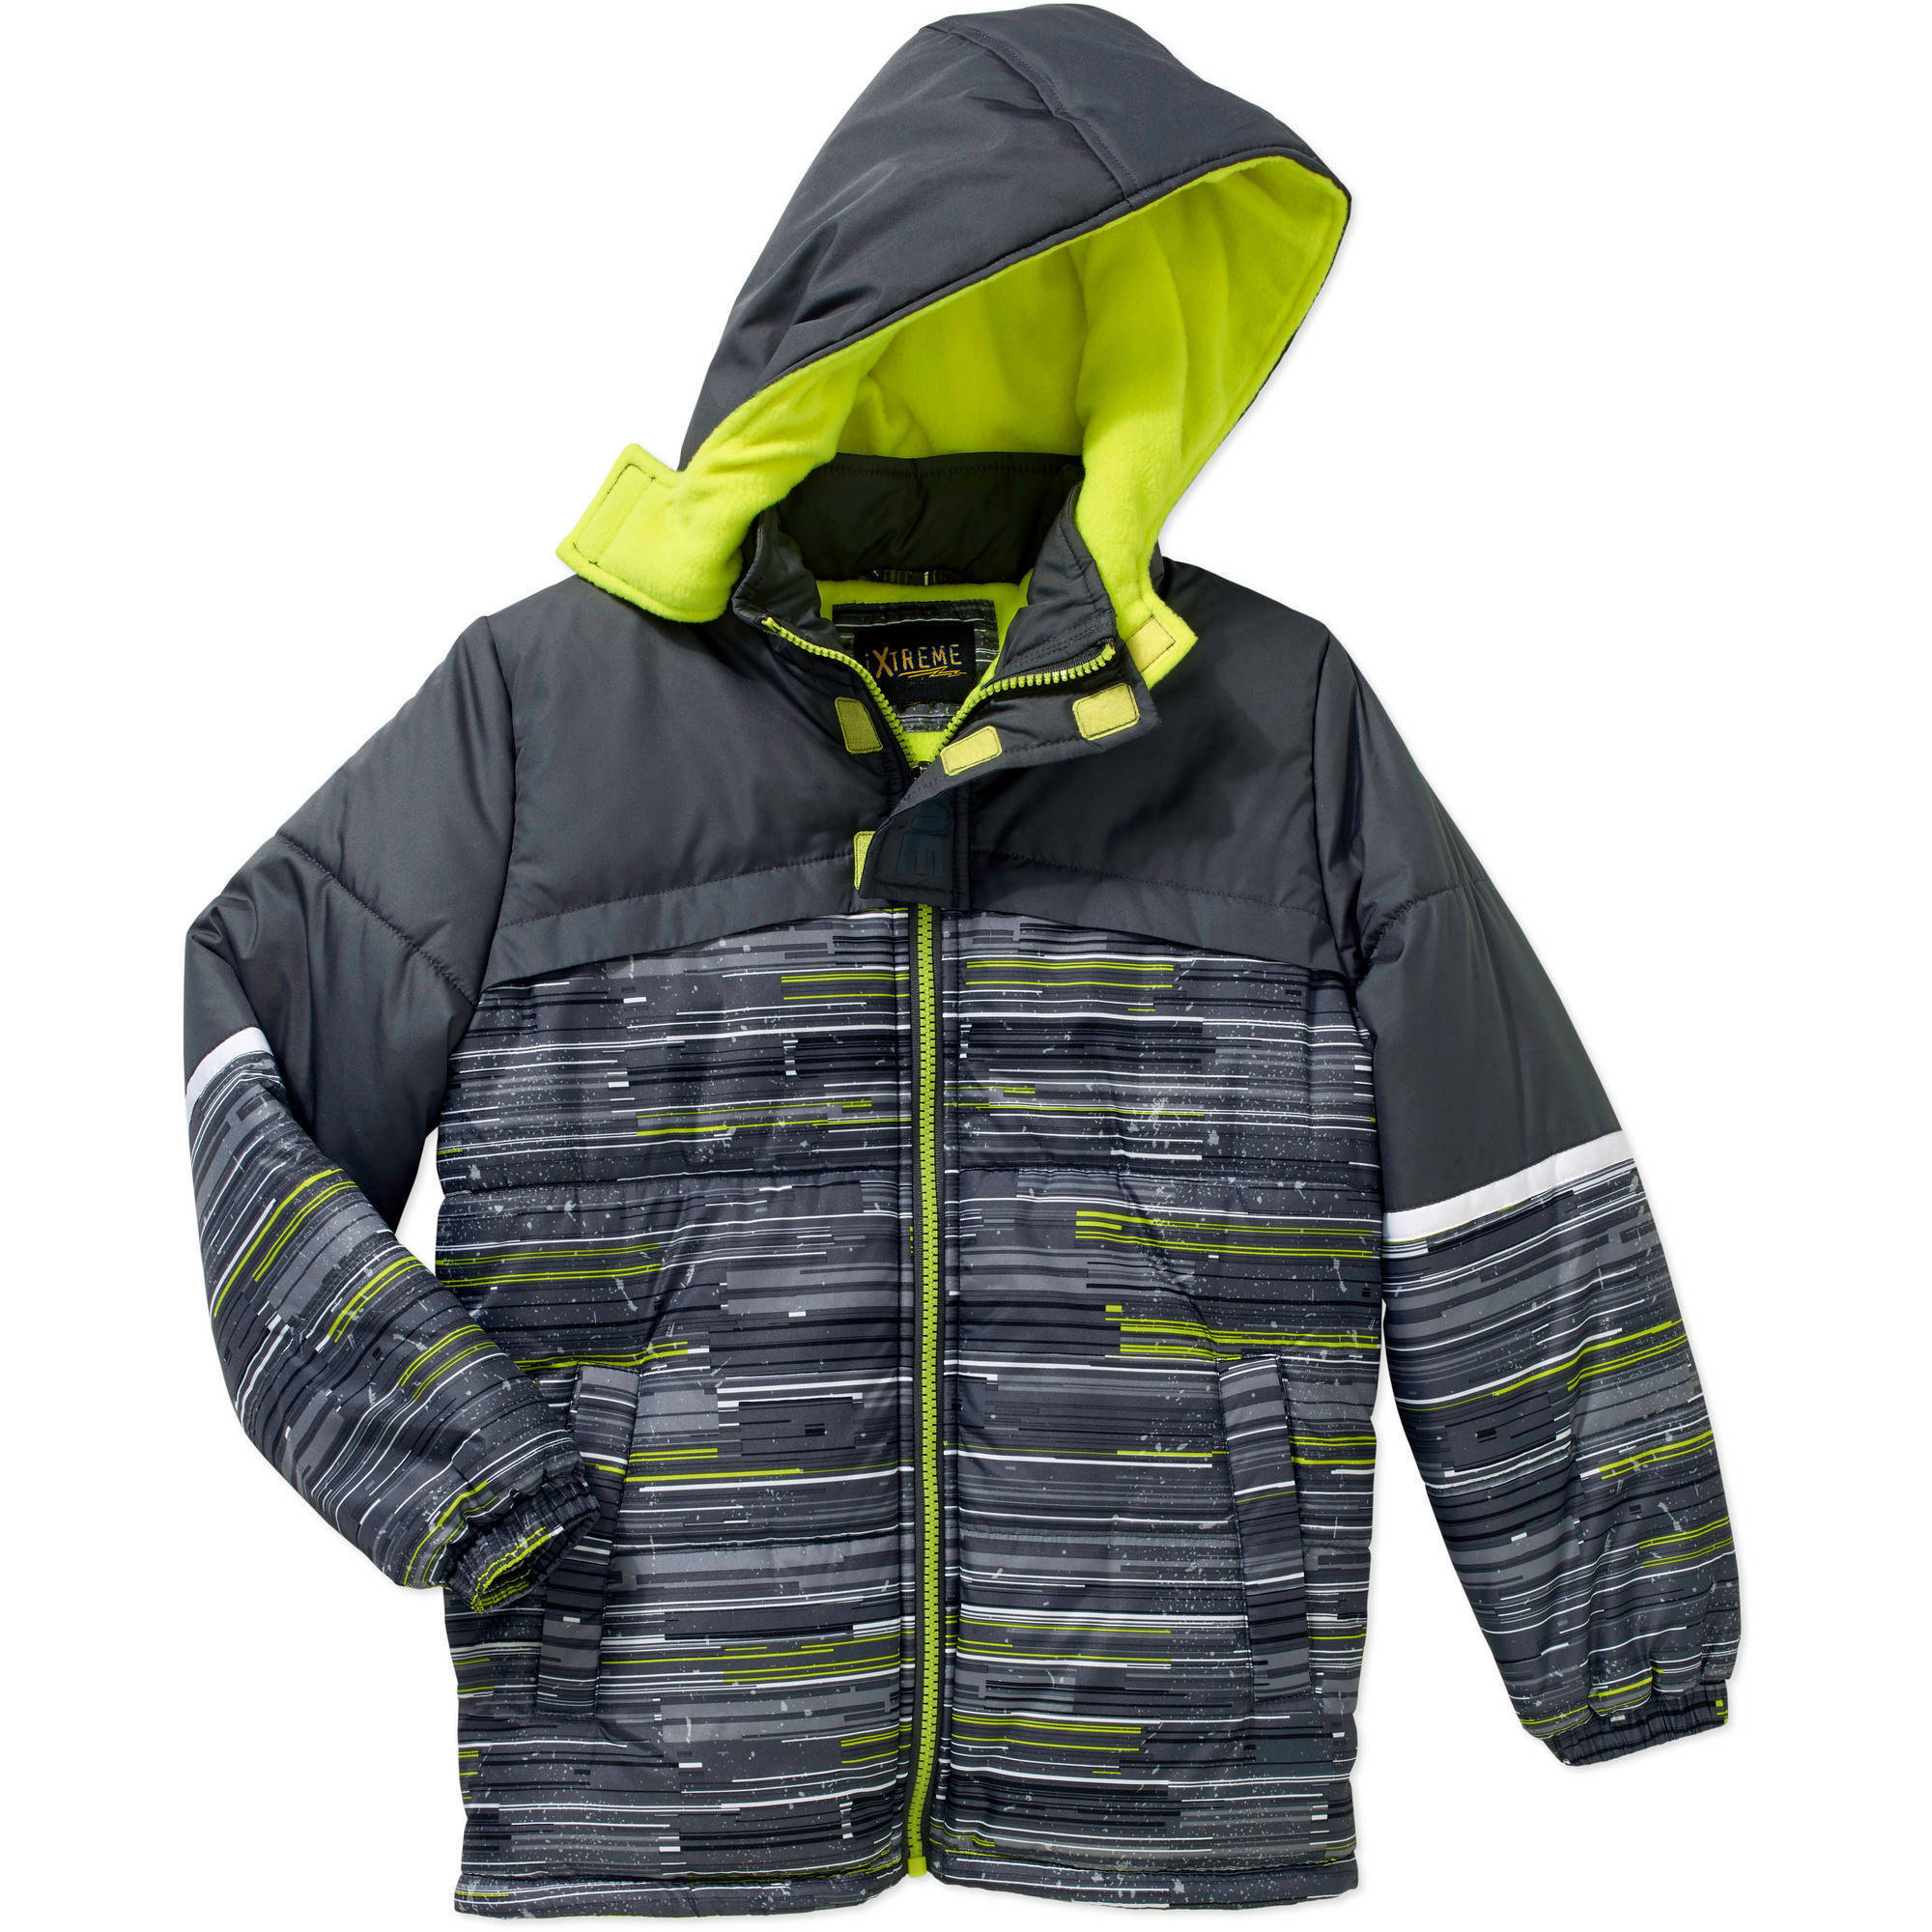 iXtreme Boys Puffer Jacket, Available in 4 Designs 11 Colors